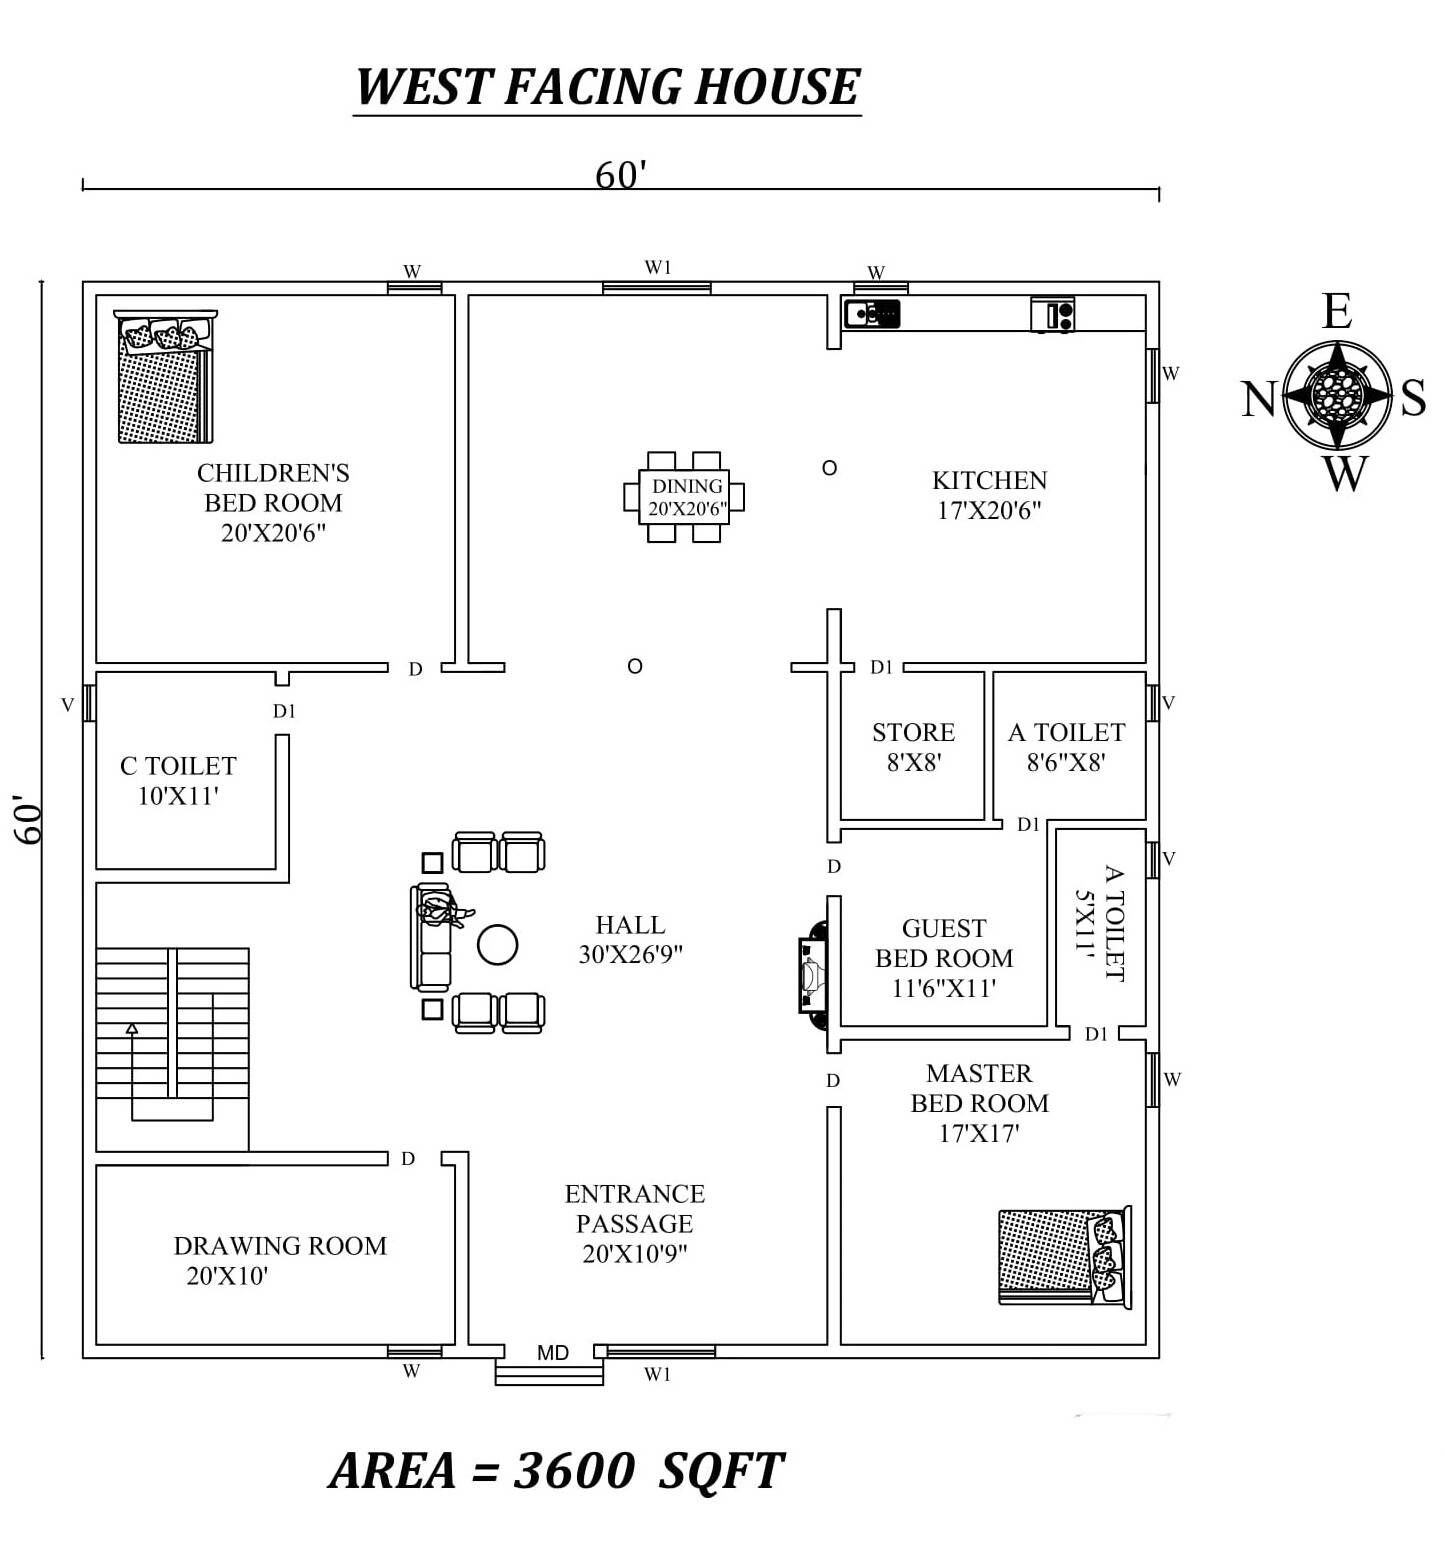 Autocad Drawing file shows 60'X 60' spacious 3bhk West